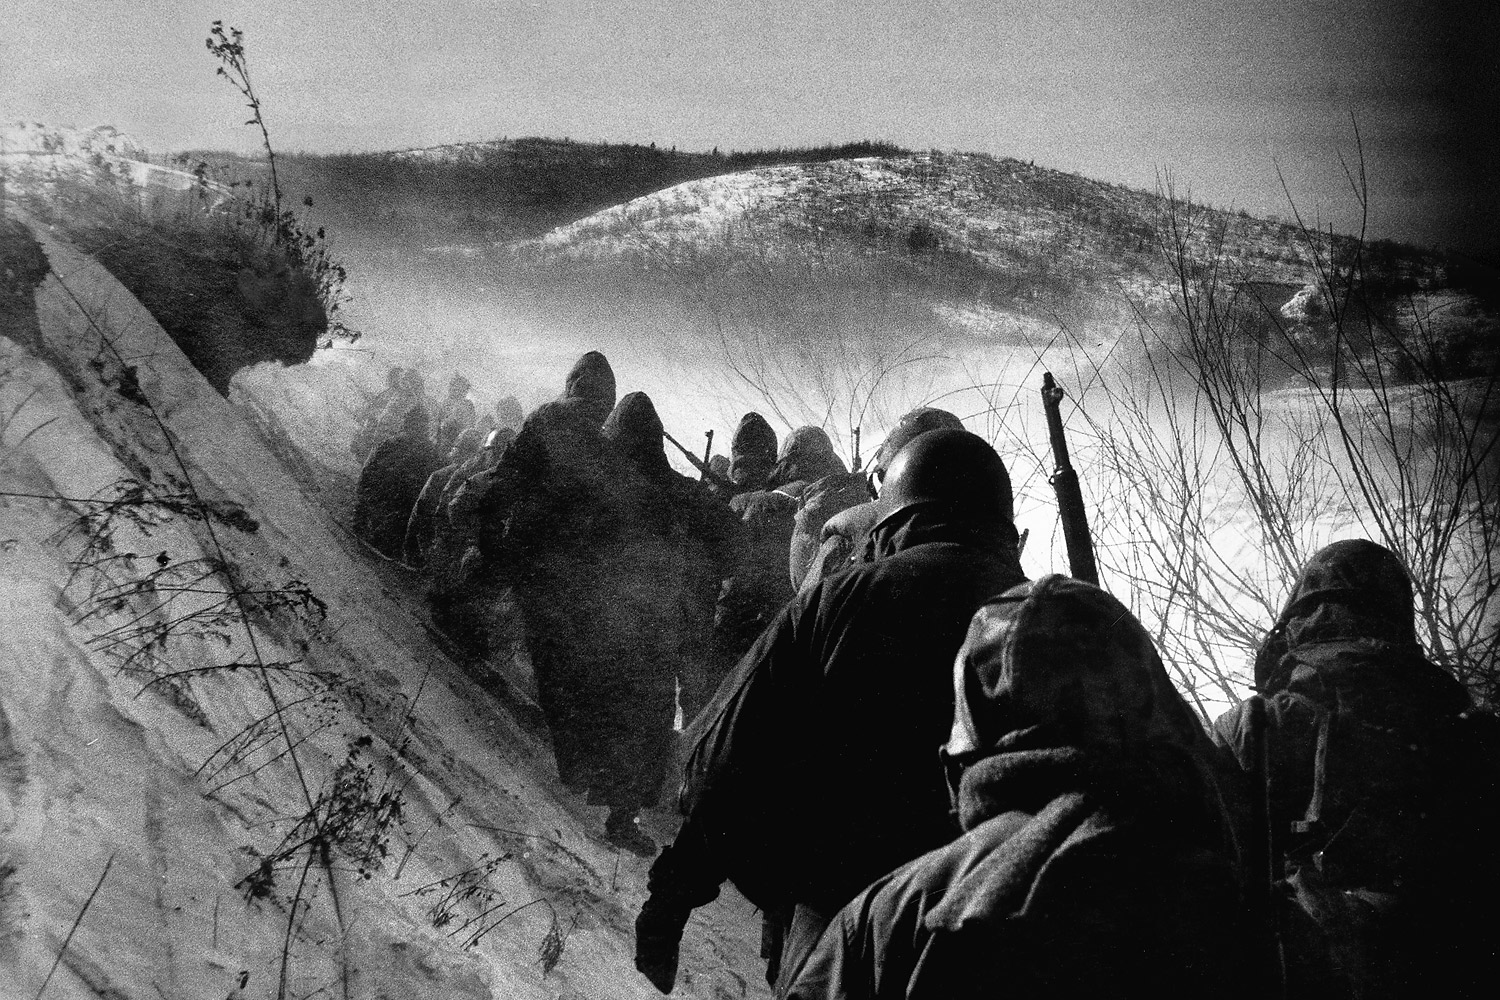 U.S. Marines of the 1st Division marching in a long column down canyon road they called  Nightmare Alley  during their grim retreat from the Changjin Reservoir towards Hamhung after being cut off by the Red Chinese in December 1950.